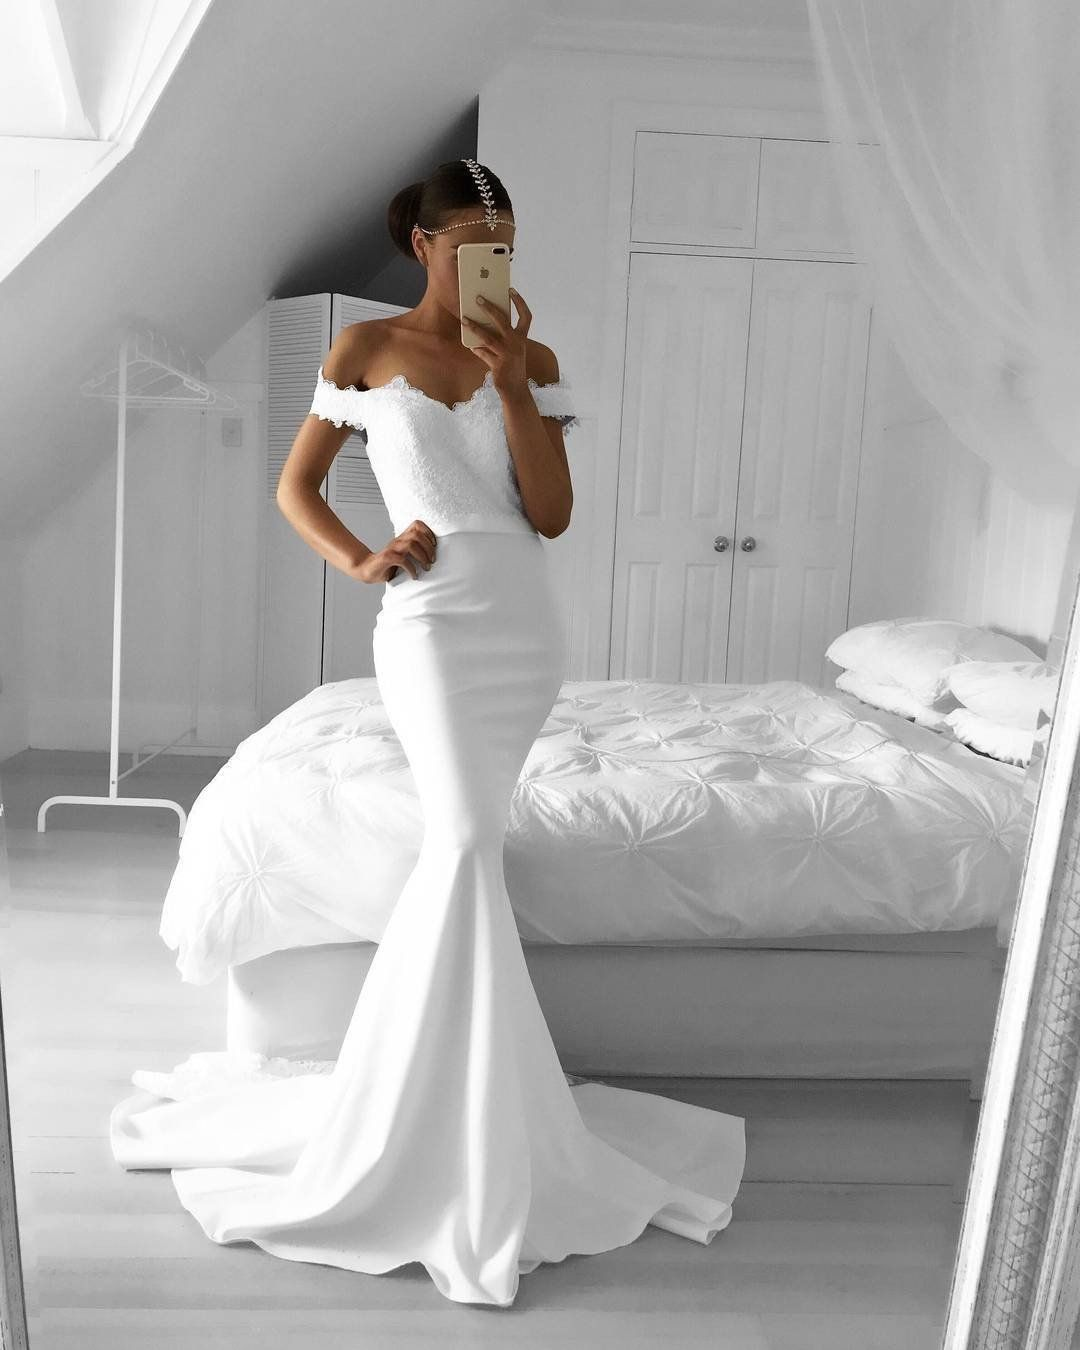 Off The Shoulder Mermaid Evening Dresses Lace Appliques Mermaid Dresses Wedding Dresses Lace Mermaid Prom Dresses,Cheap Evening Dresses For Weddings